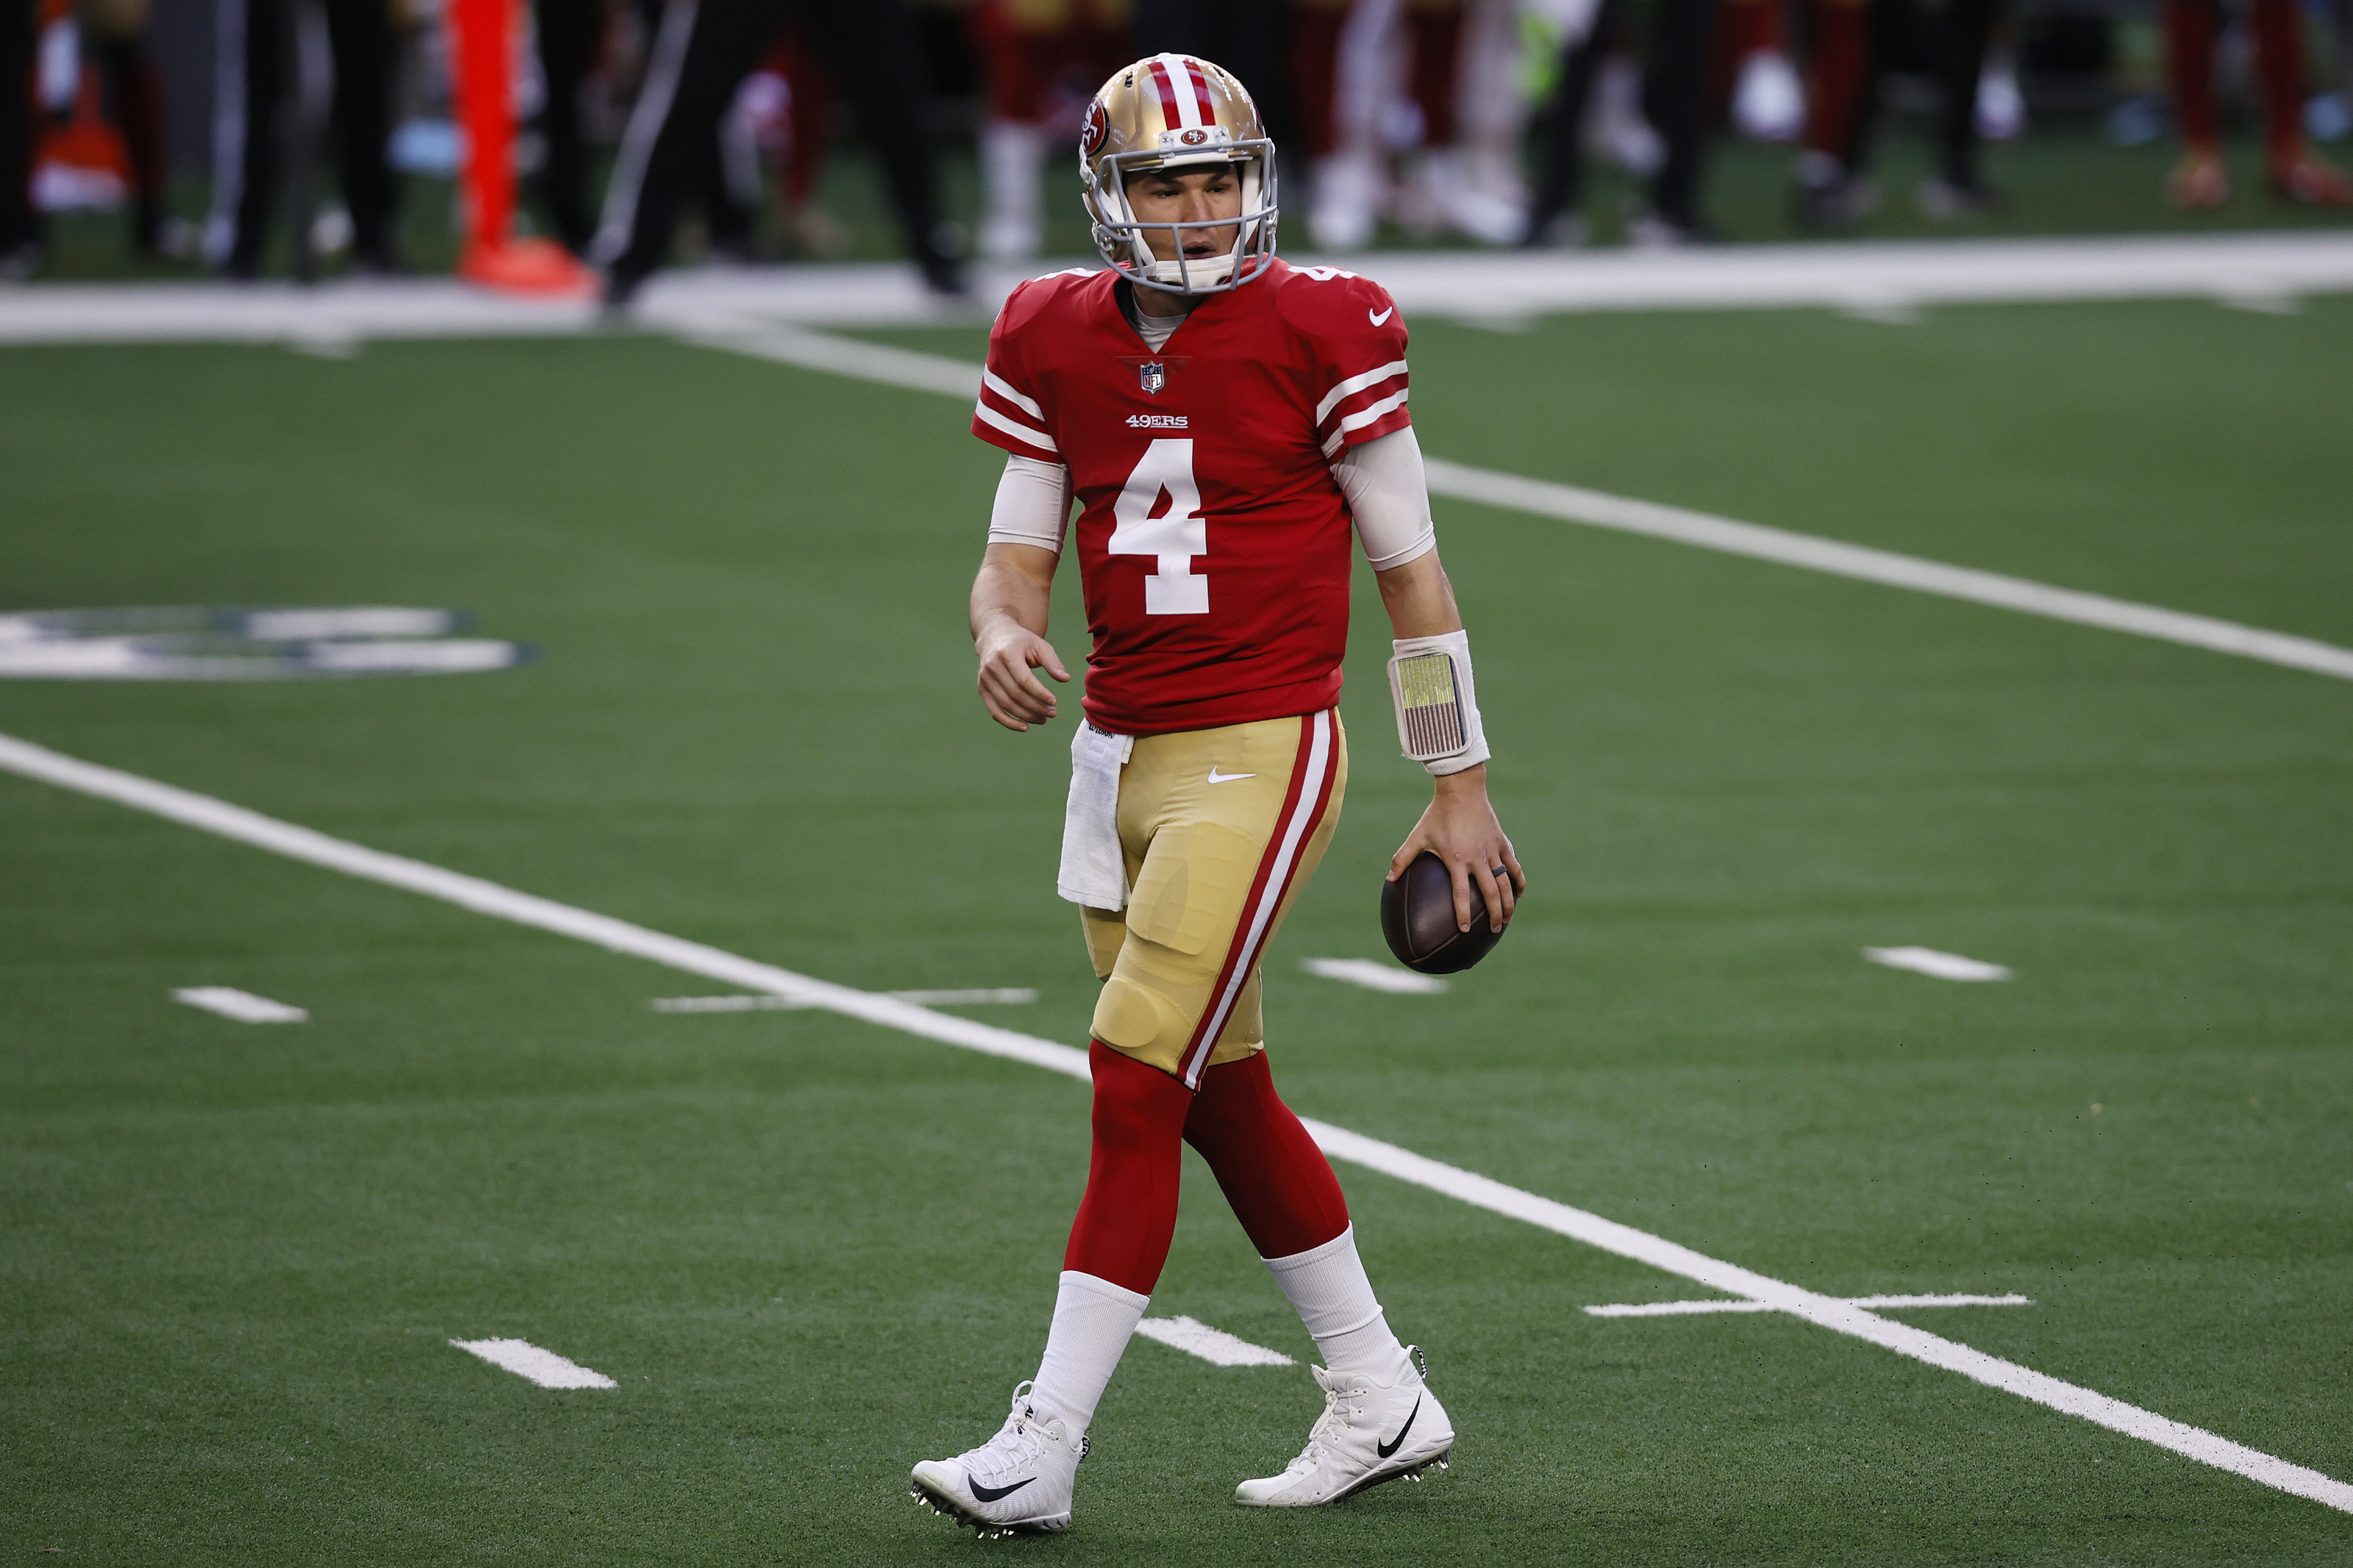 SF 49ers should pass on tendering RFA Nick Mullens